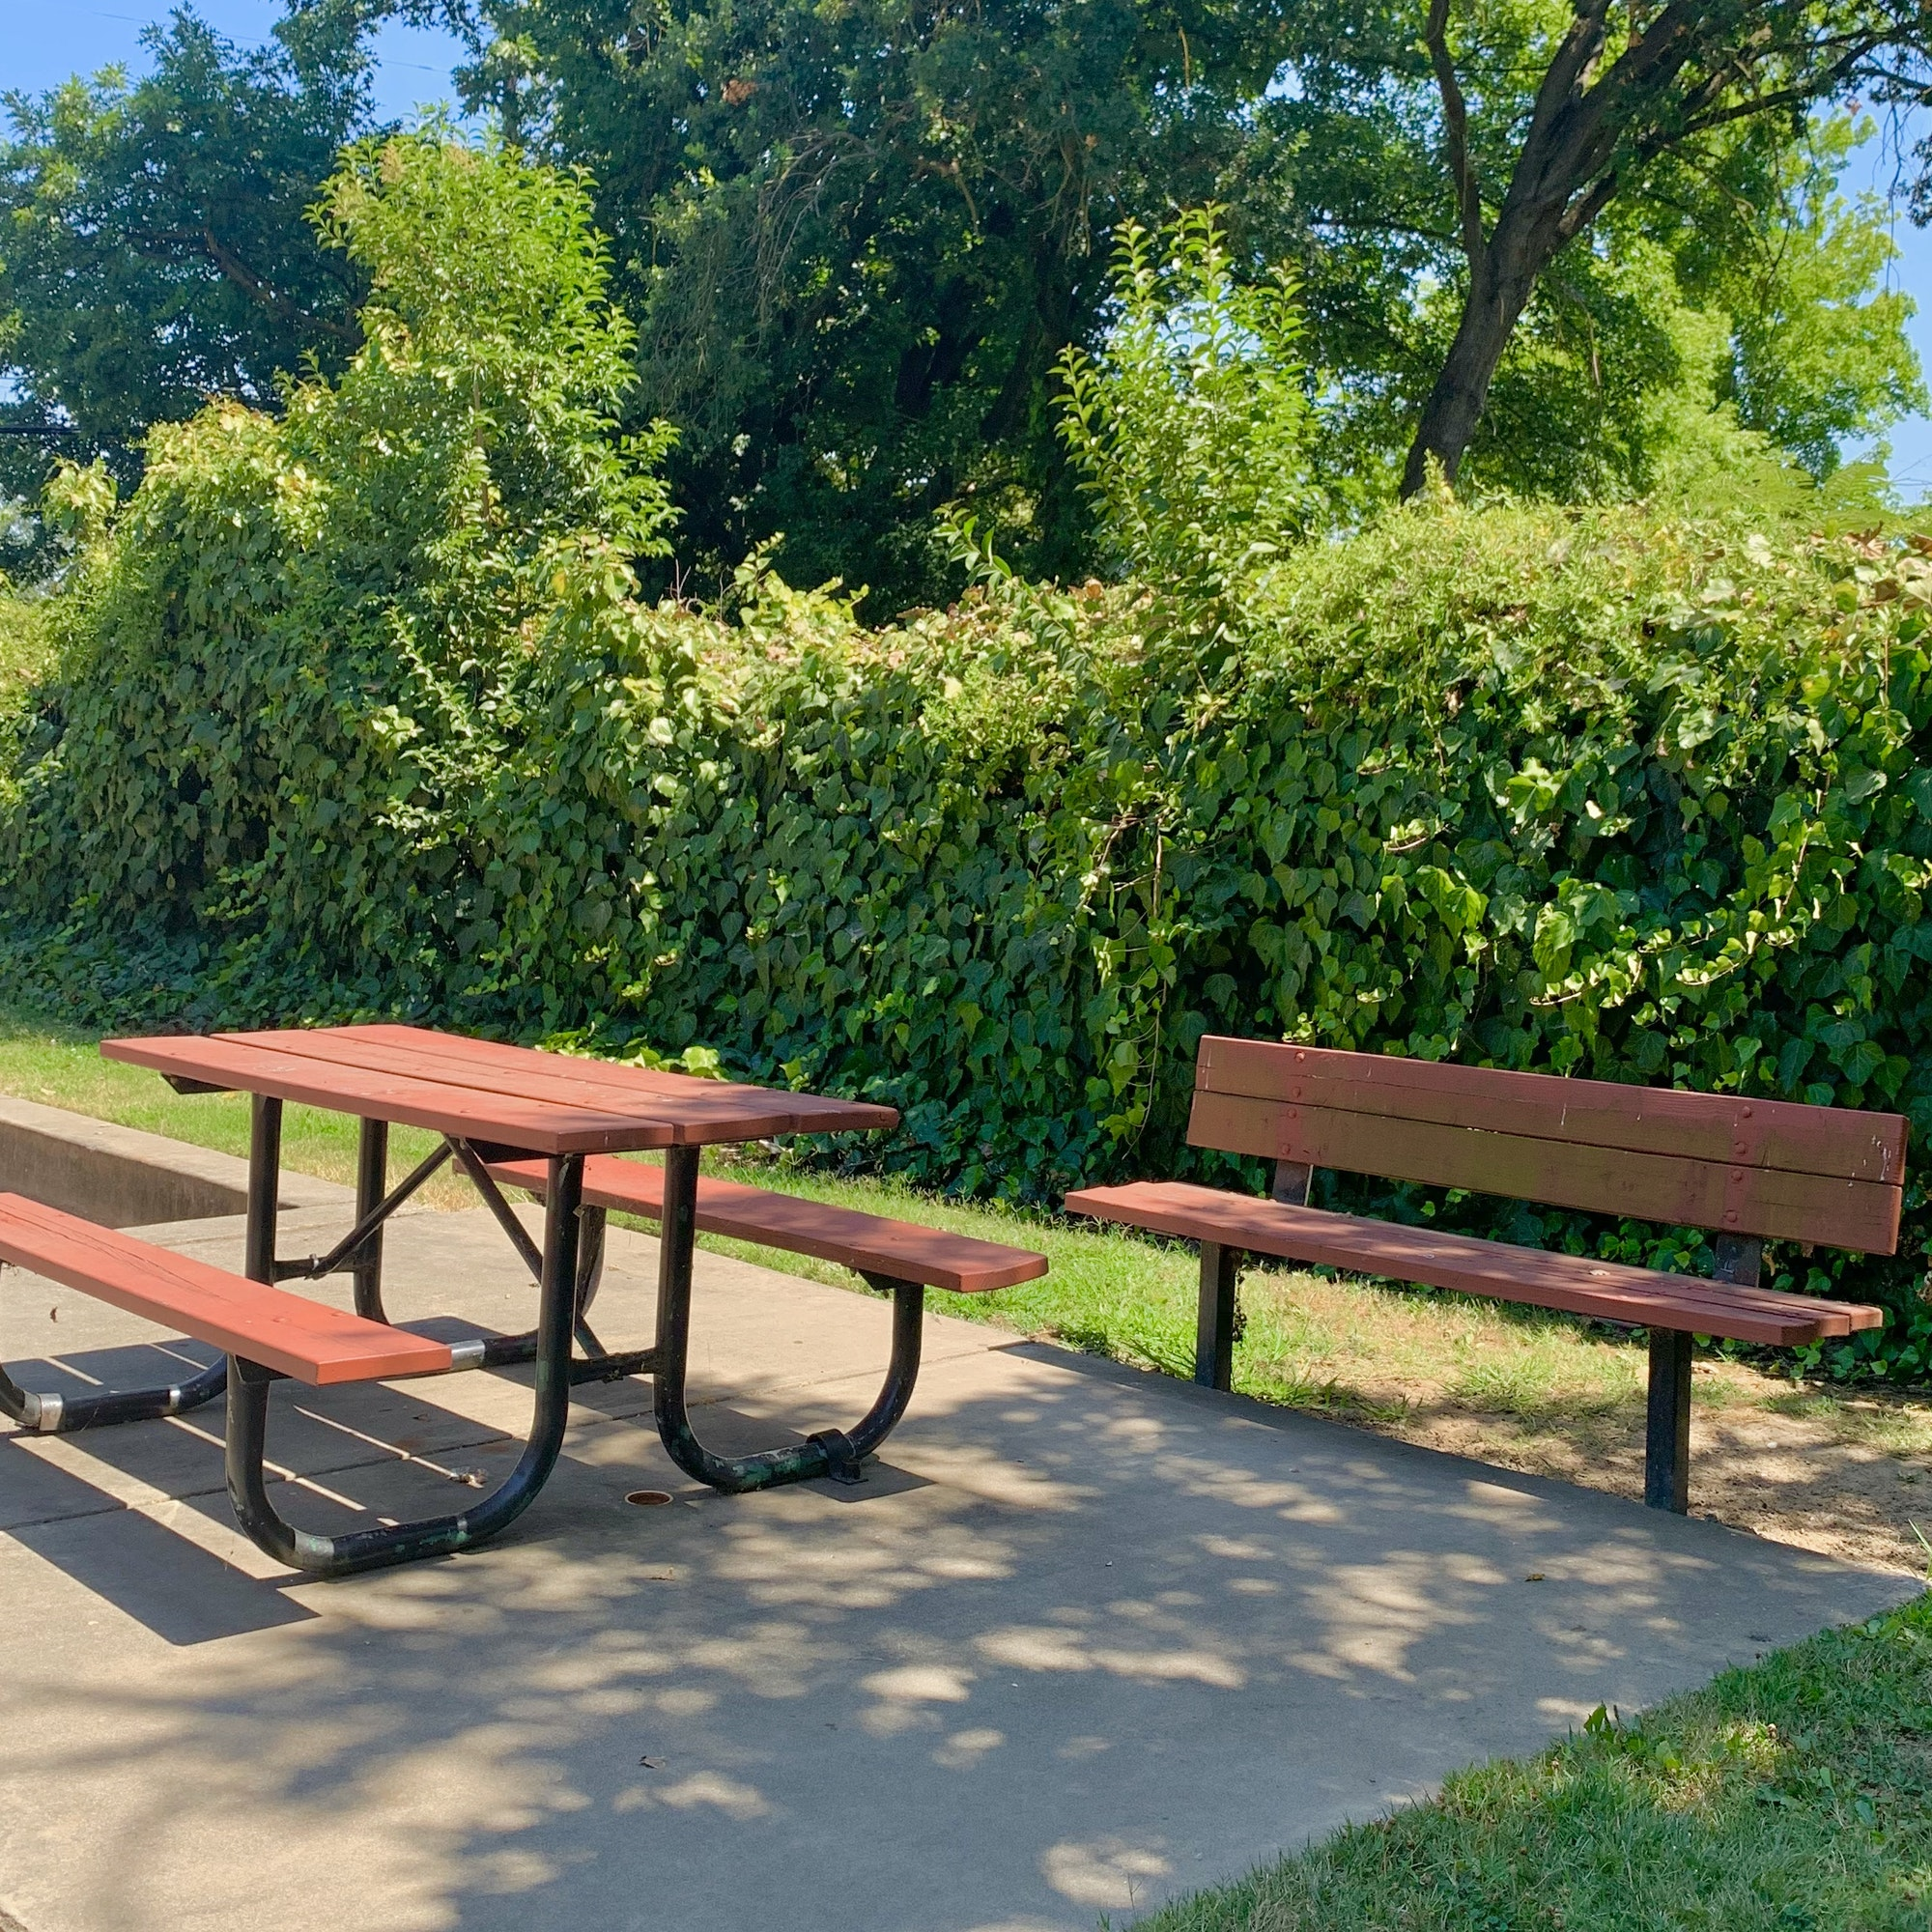 May contain: furniture, bench, tabletop, park bench, plant, grass, and table